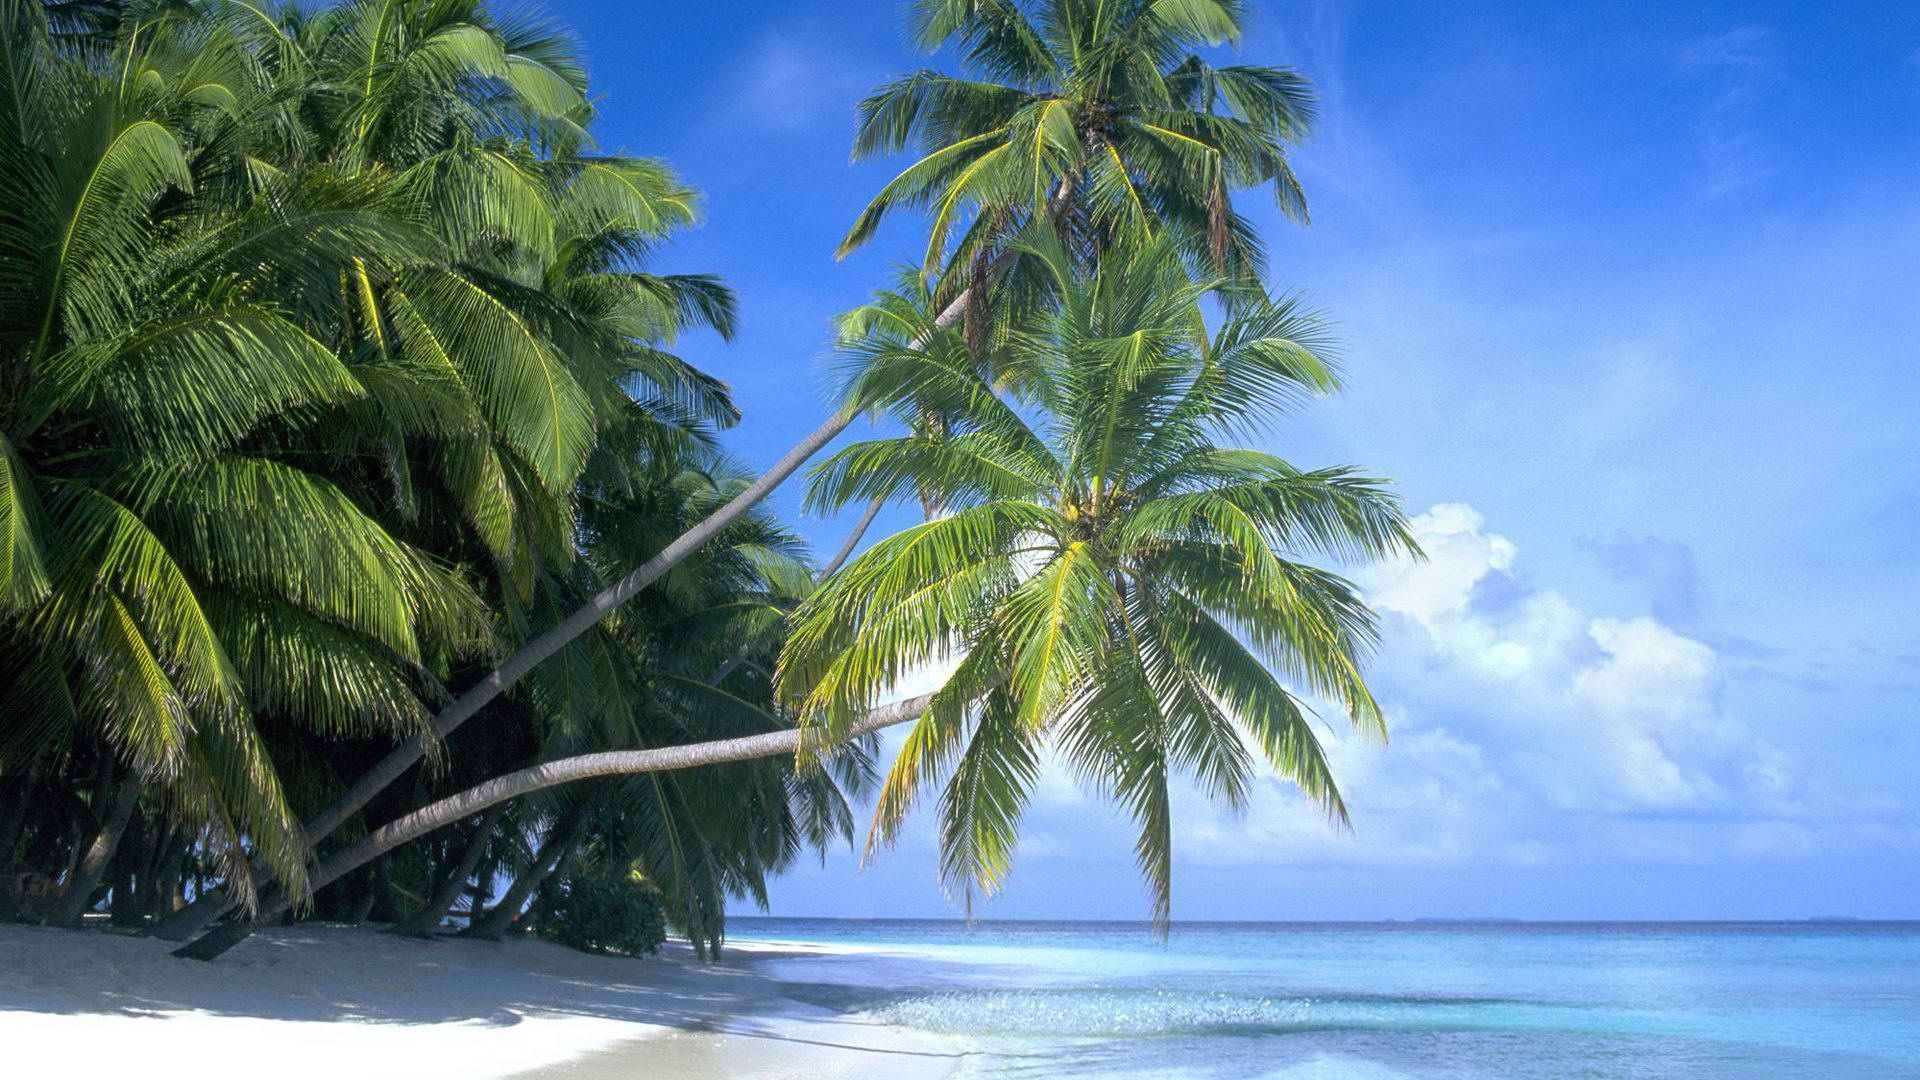 Beach Palm Tree Wide Wallpapers Car Pictures Trees Beach Wallpaper Uk  Wallpapers Hd Cole And Son Download Free For Desktop By Contour Next John  Lewis